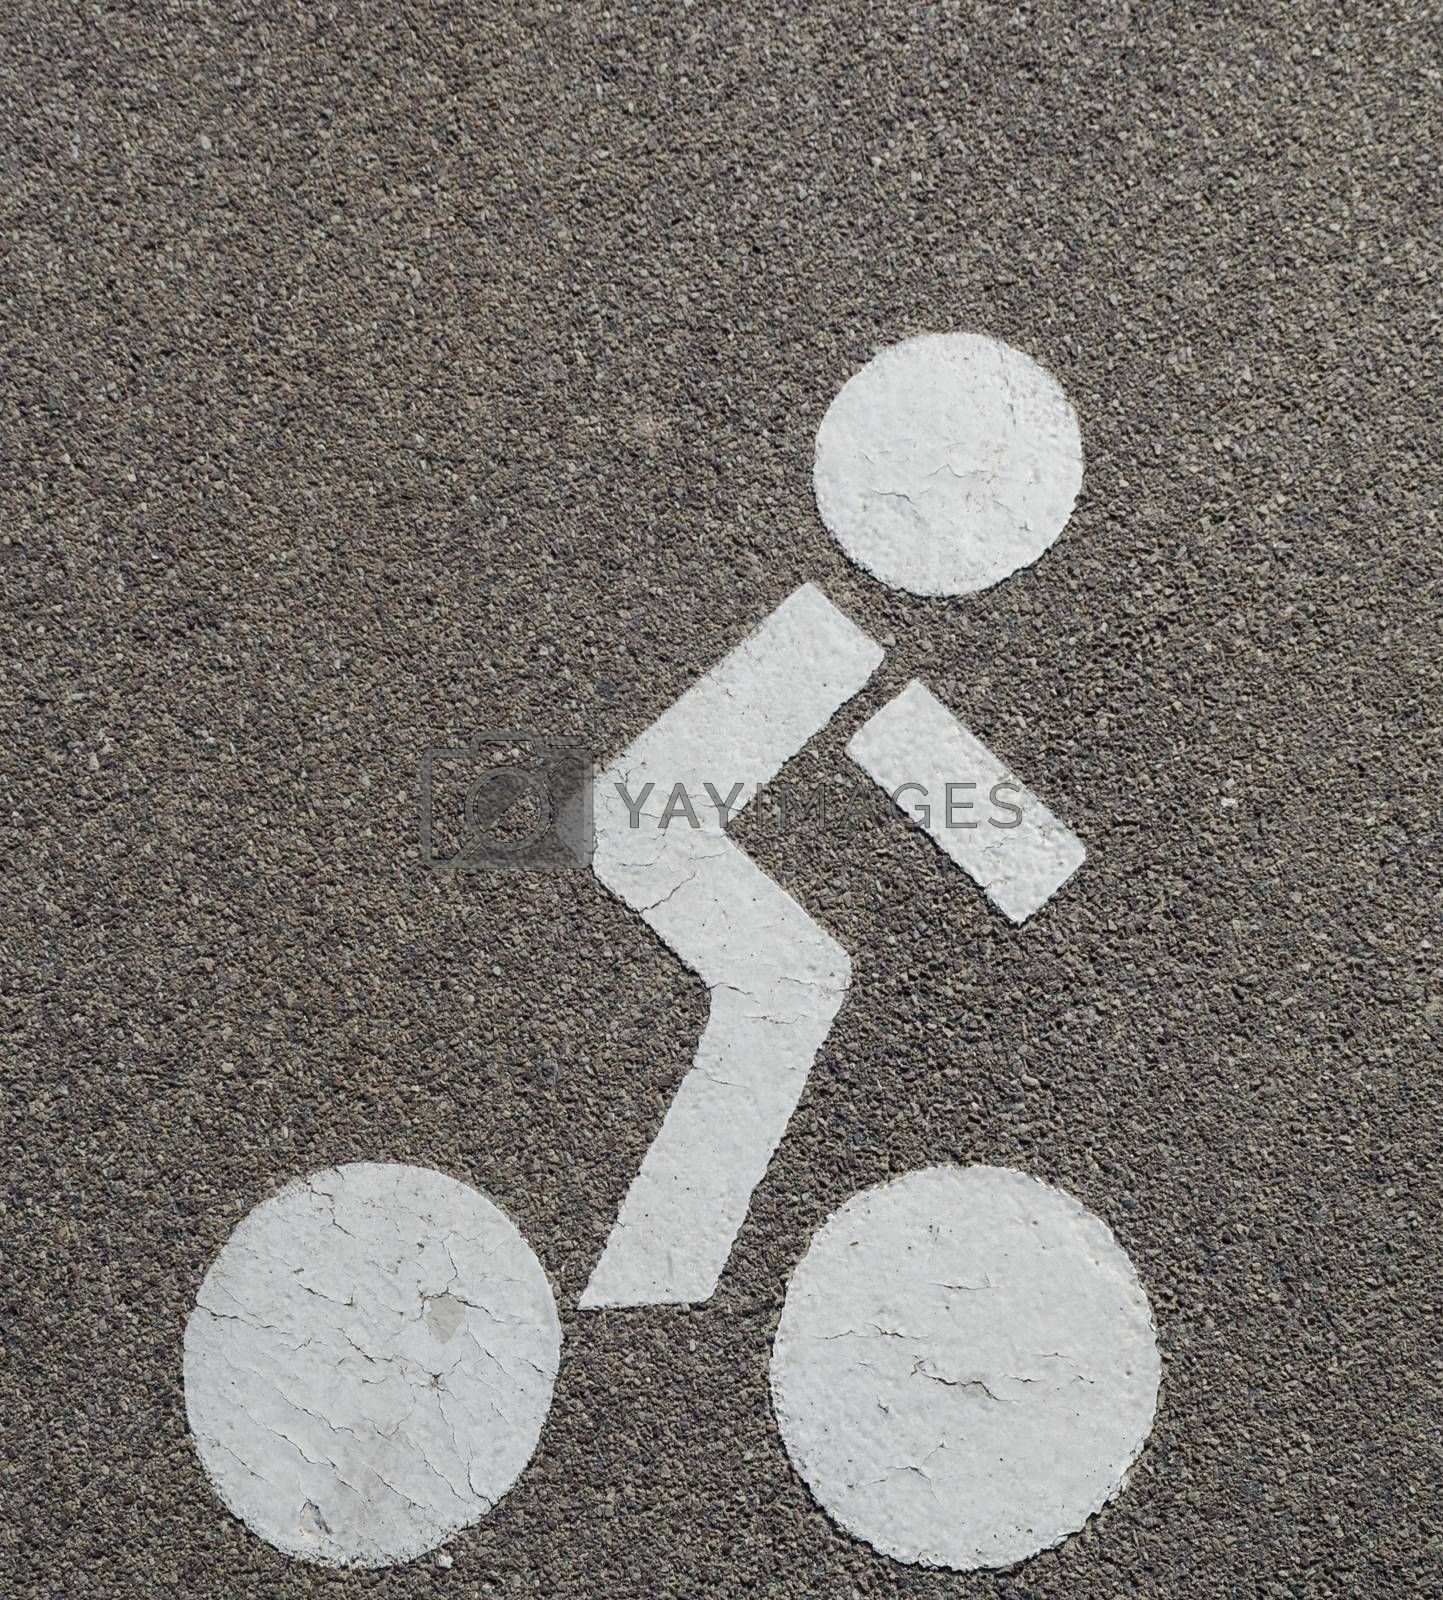 Cyclist icon on a pavement